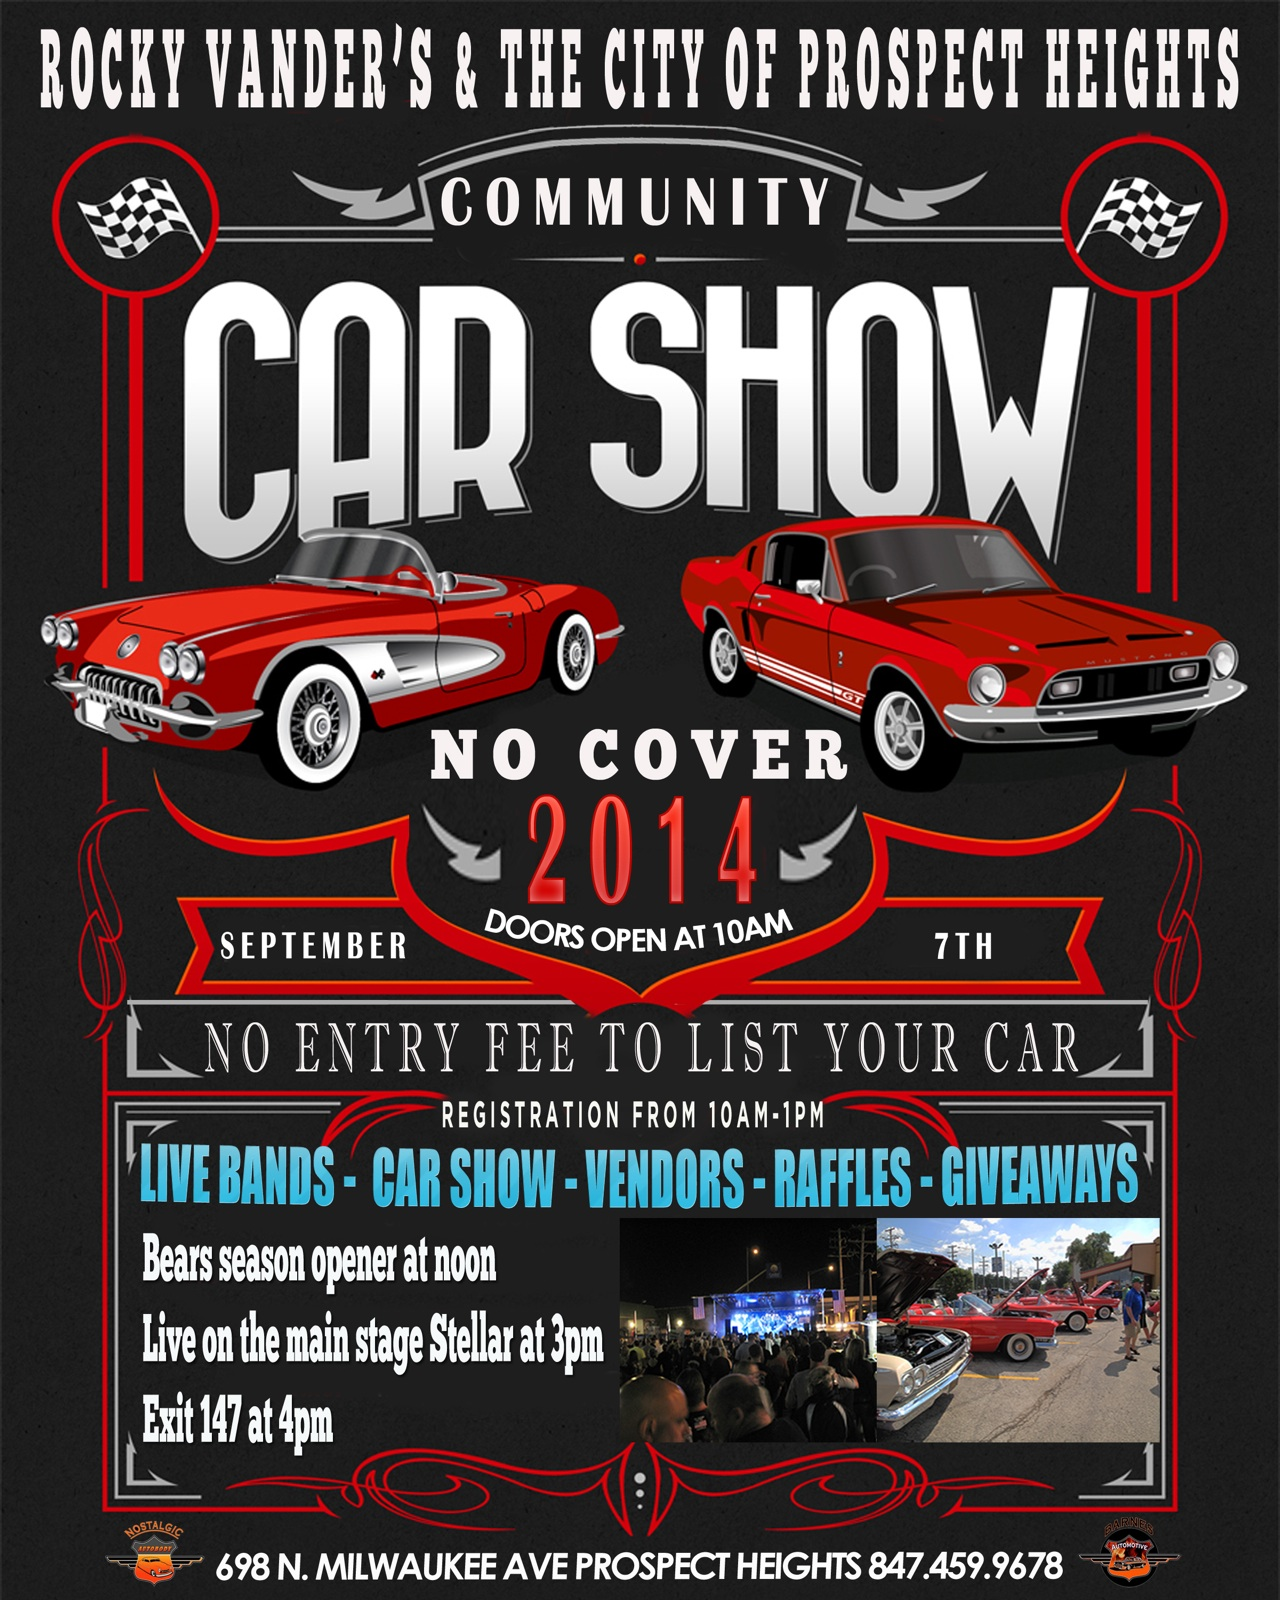 Prospect Heights IL Official Website - Car show giveaways